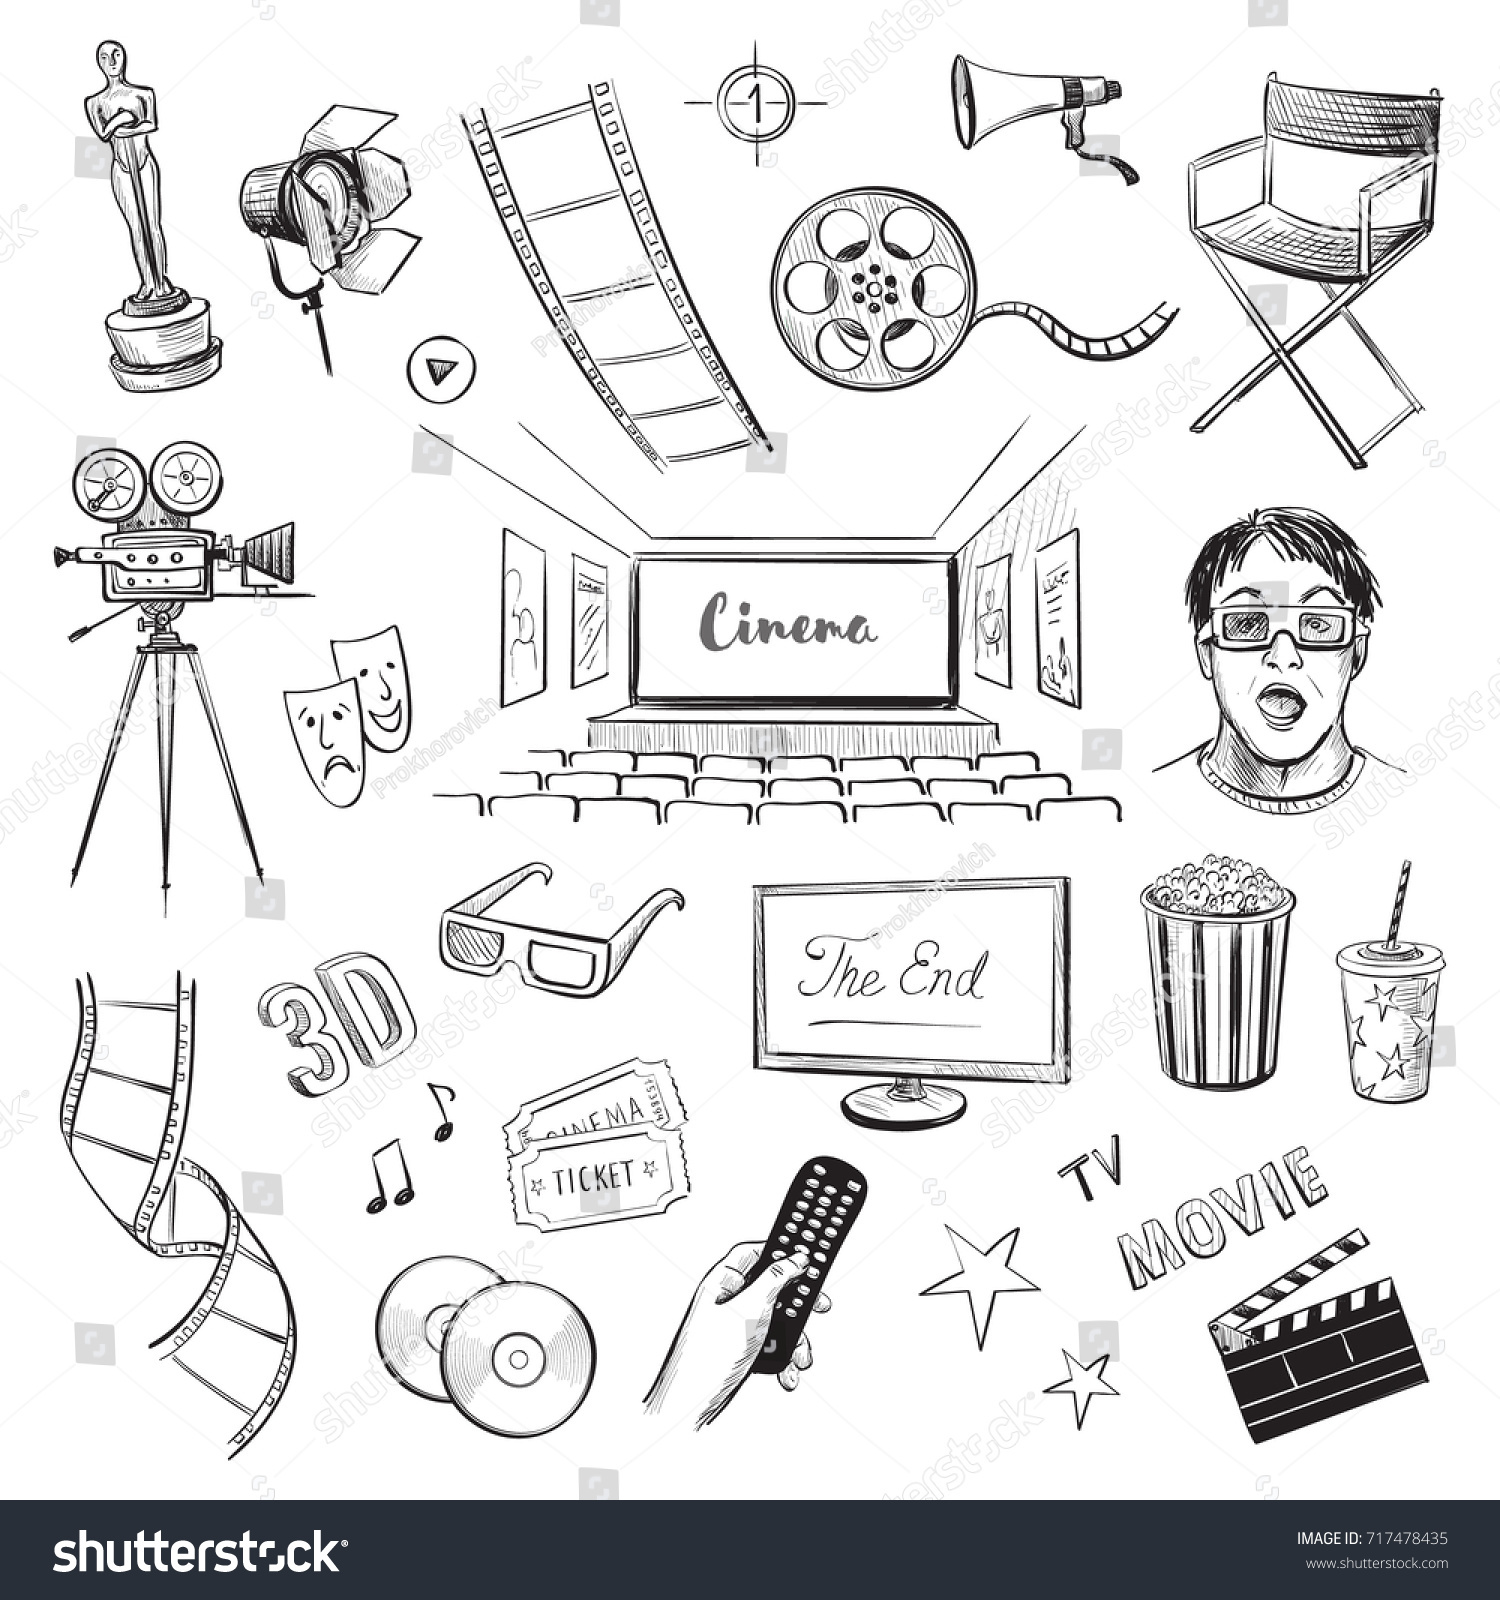 collection vector sketches cinema hand drawings stock vector